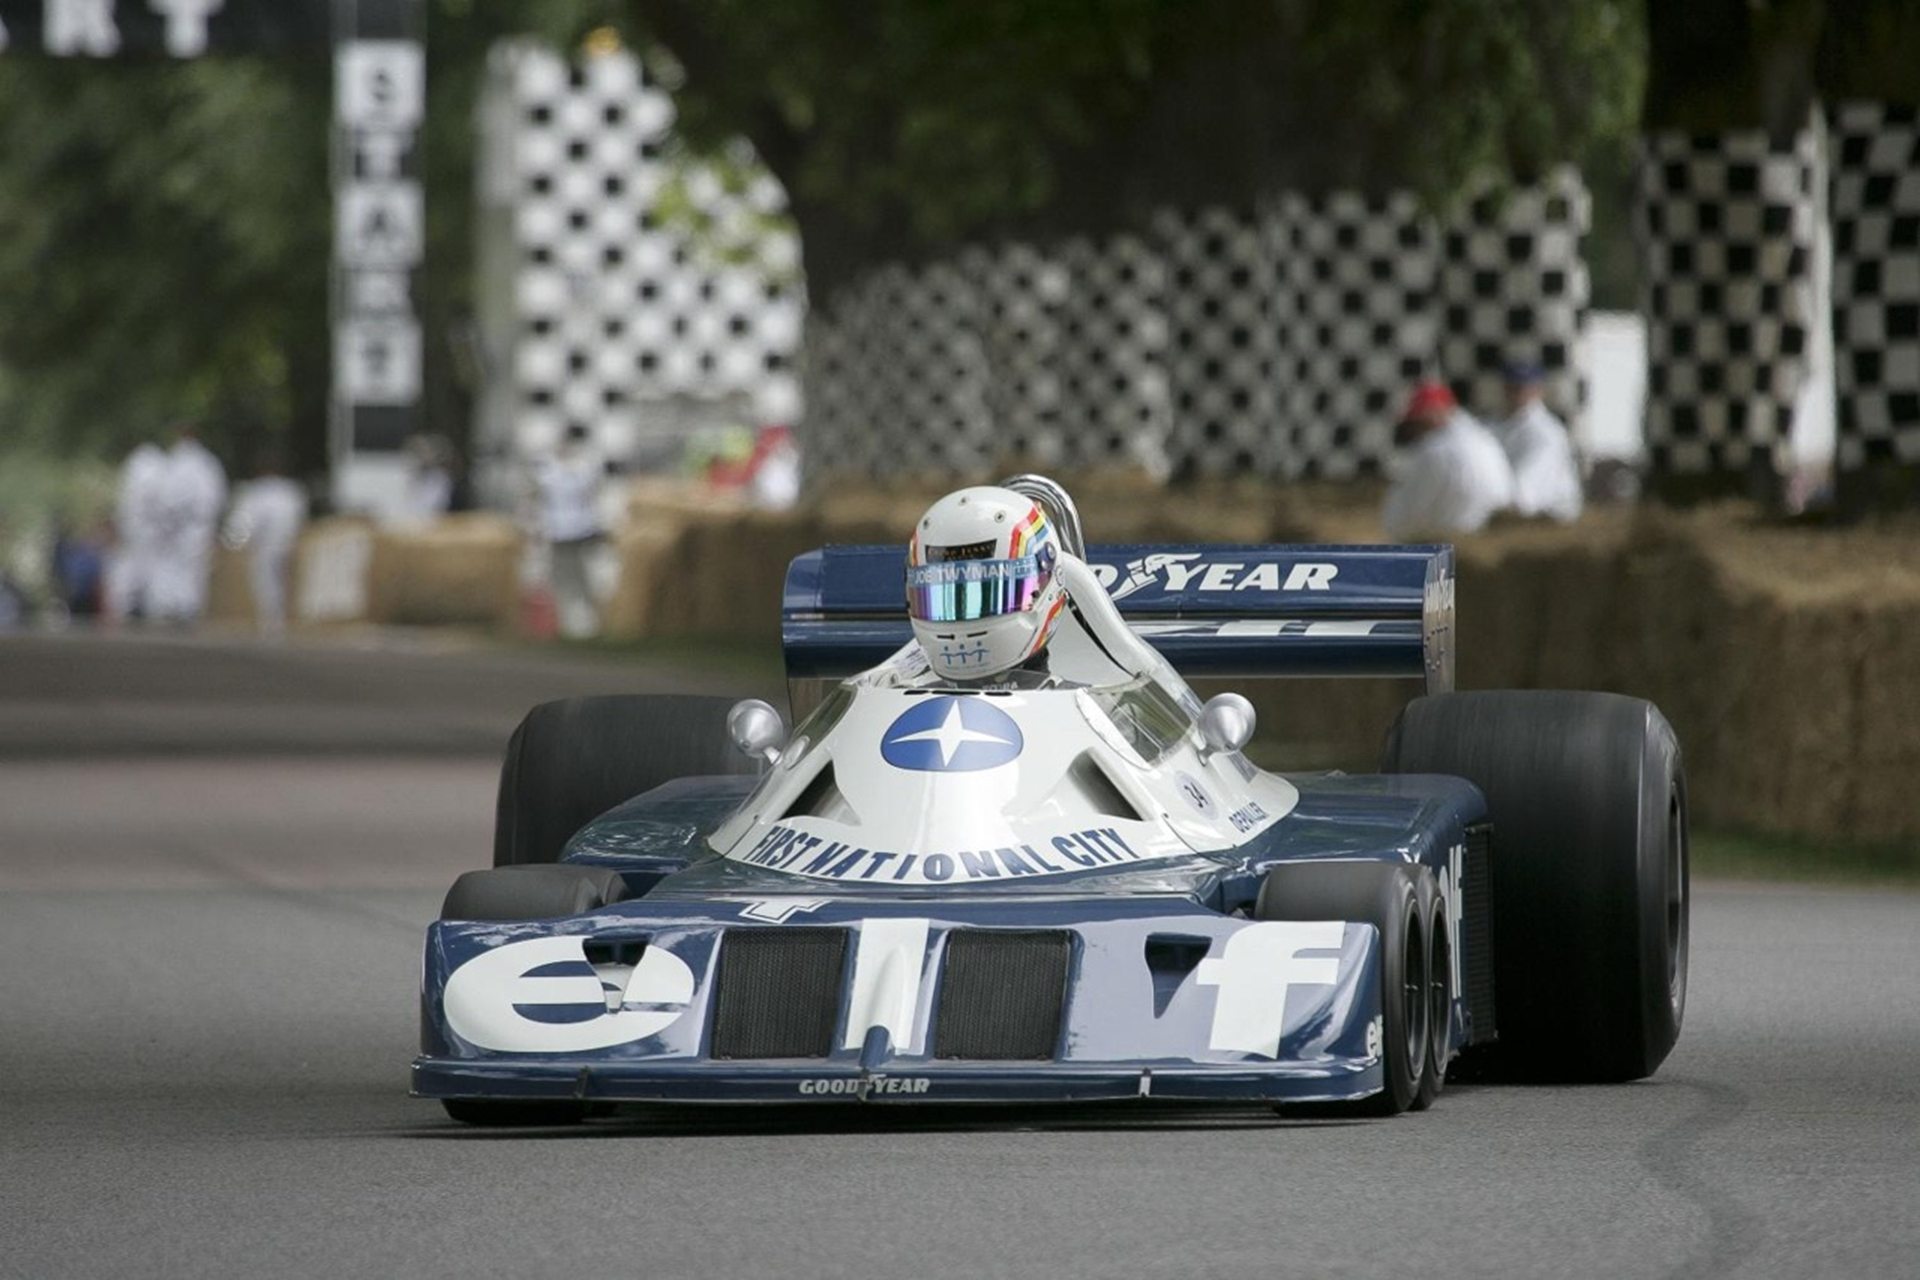 Goodwood Formula 1